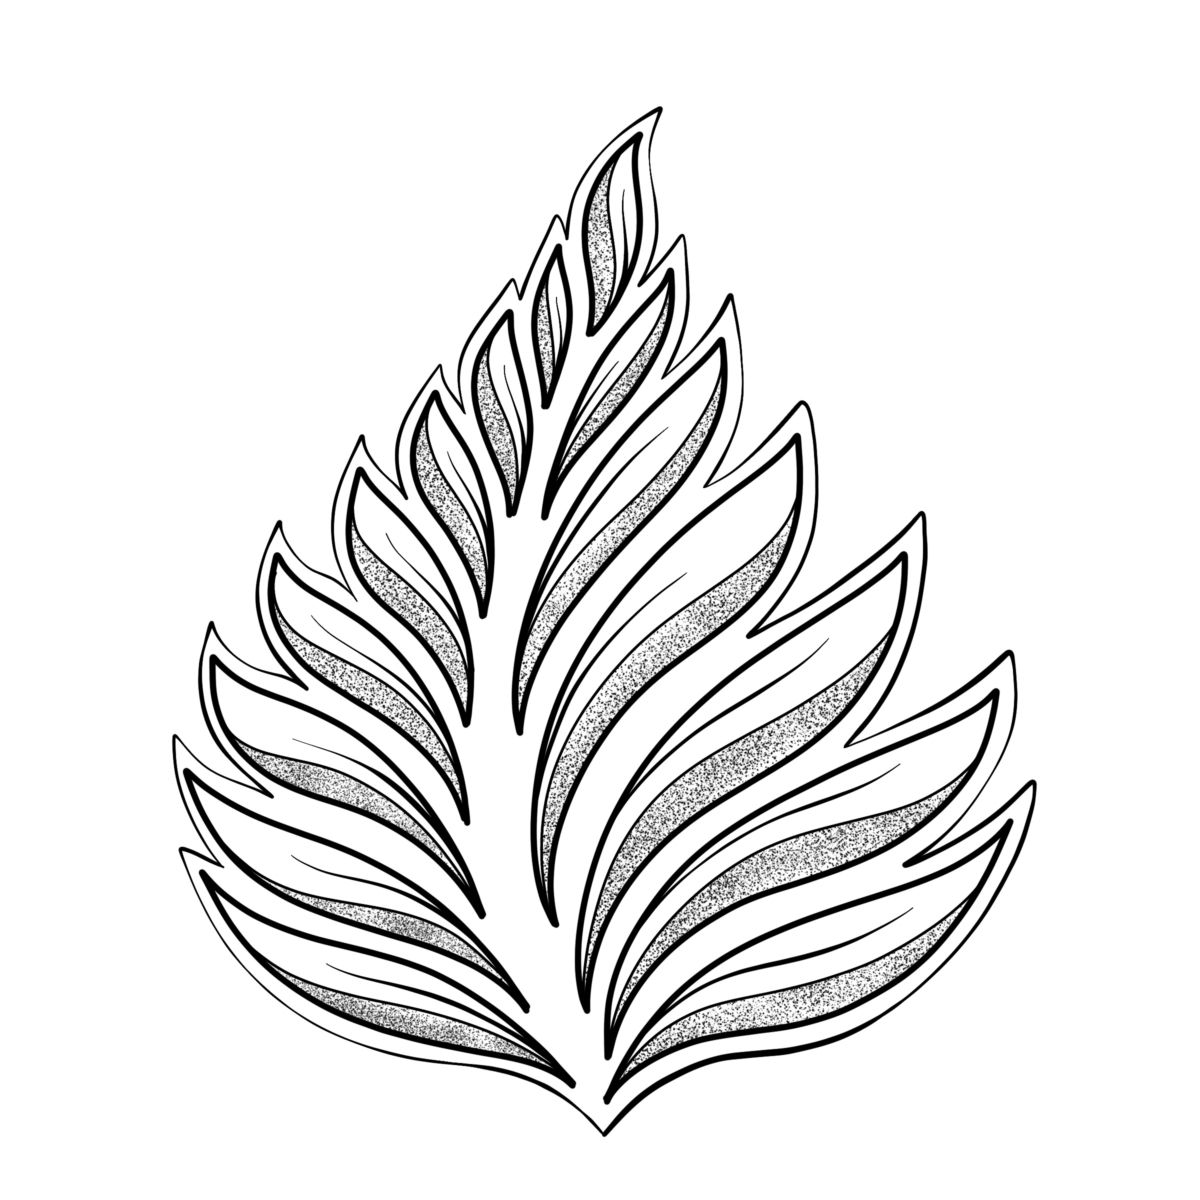 Drawing Leaves Easily Using Simple Shapes In